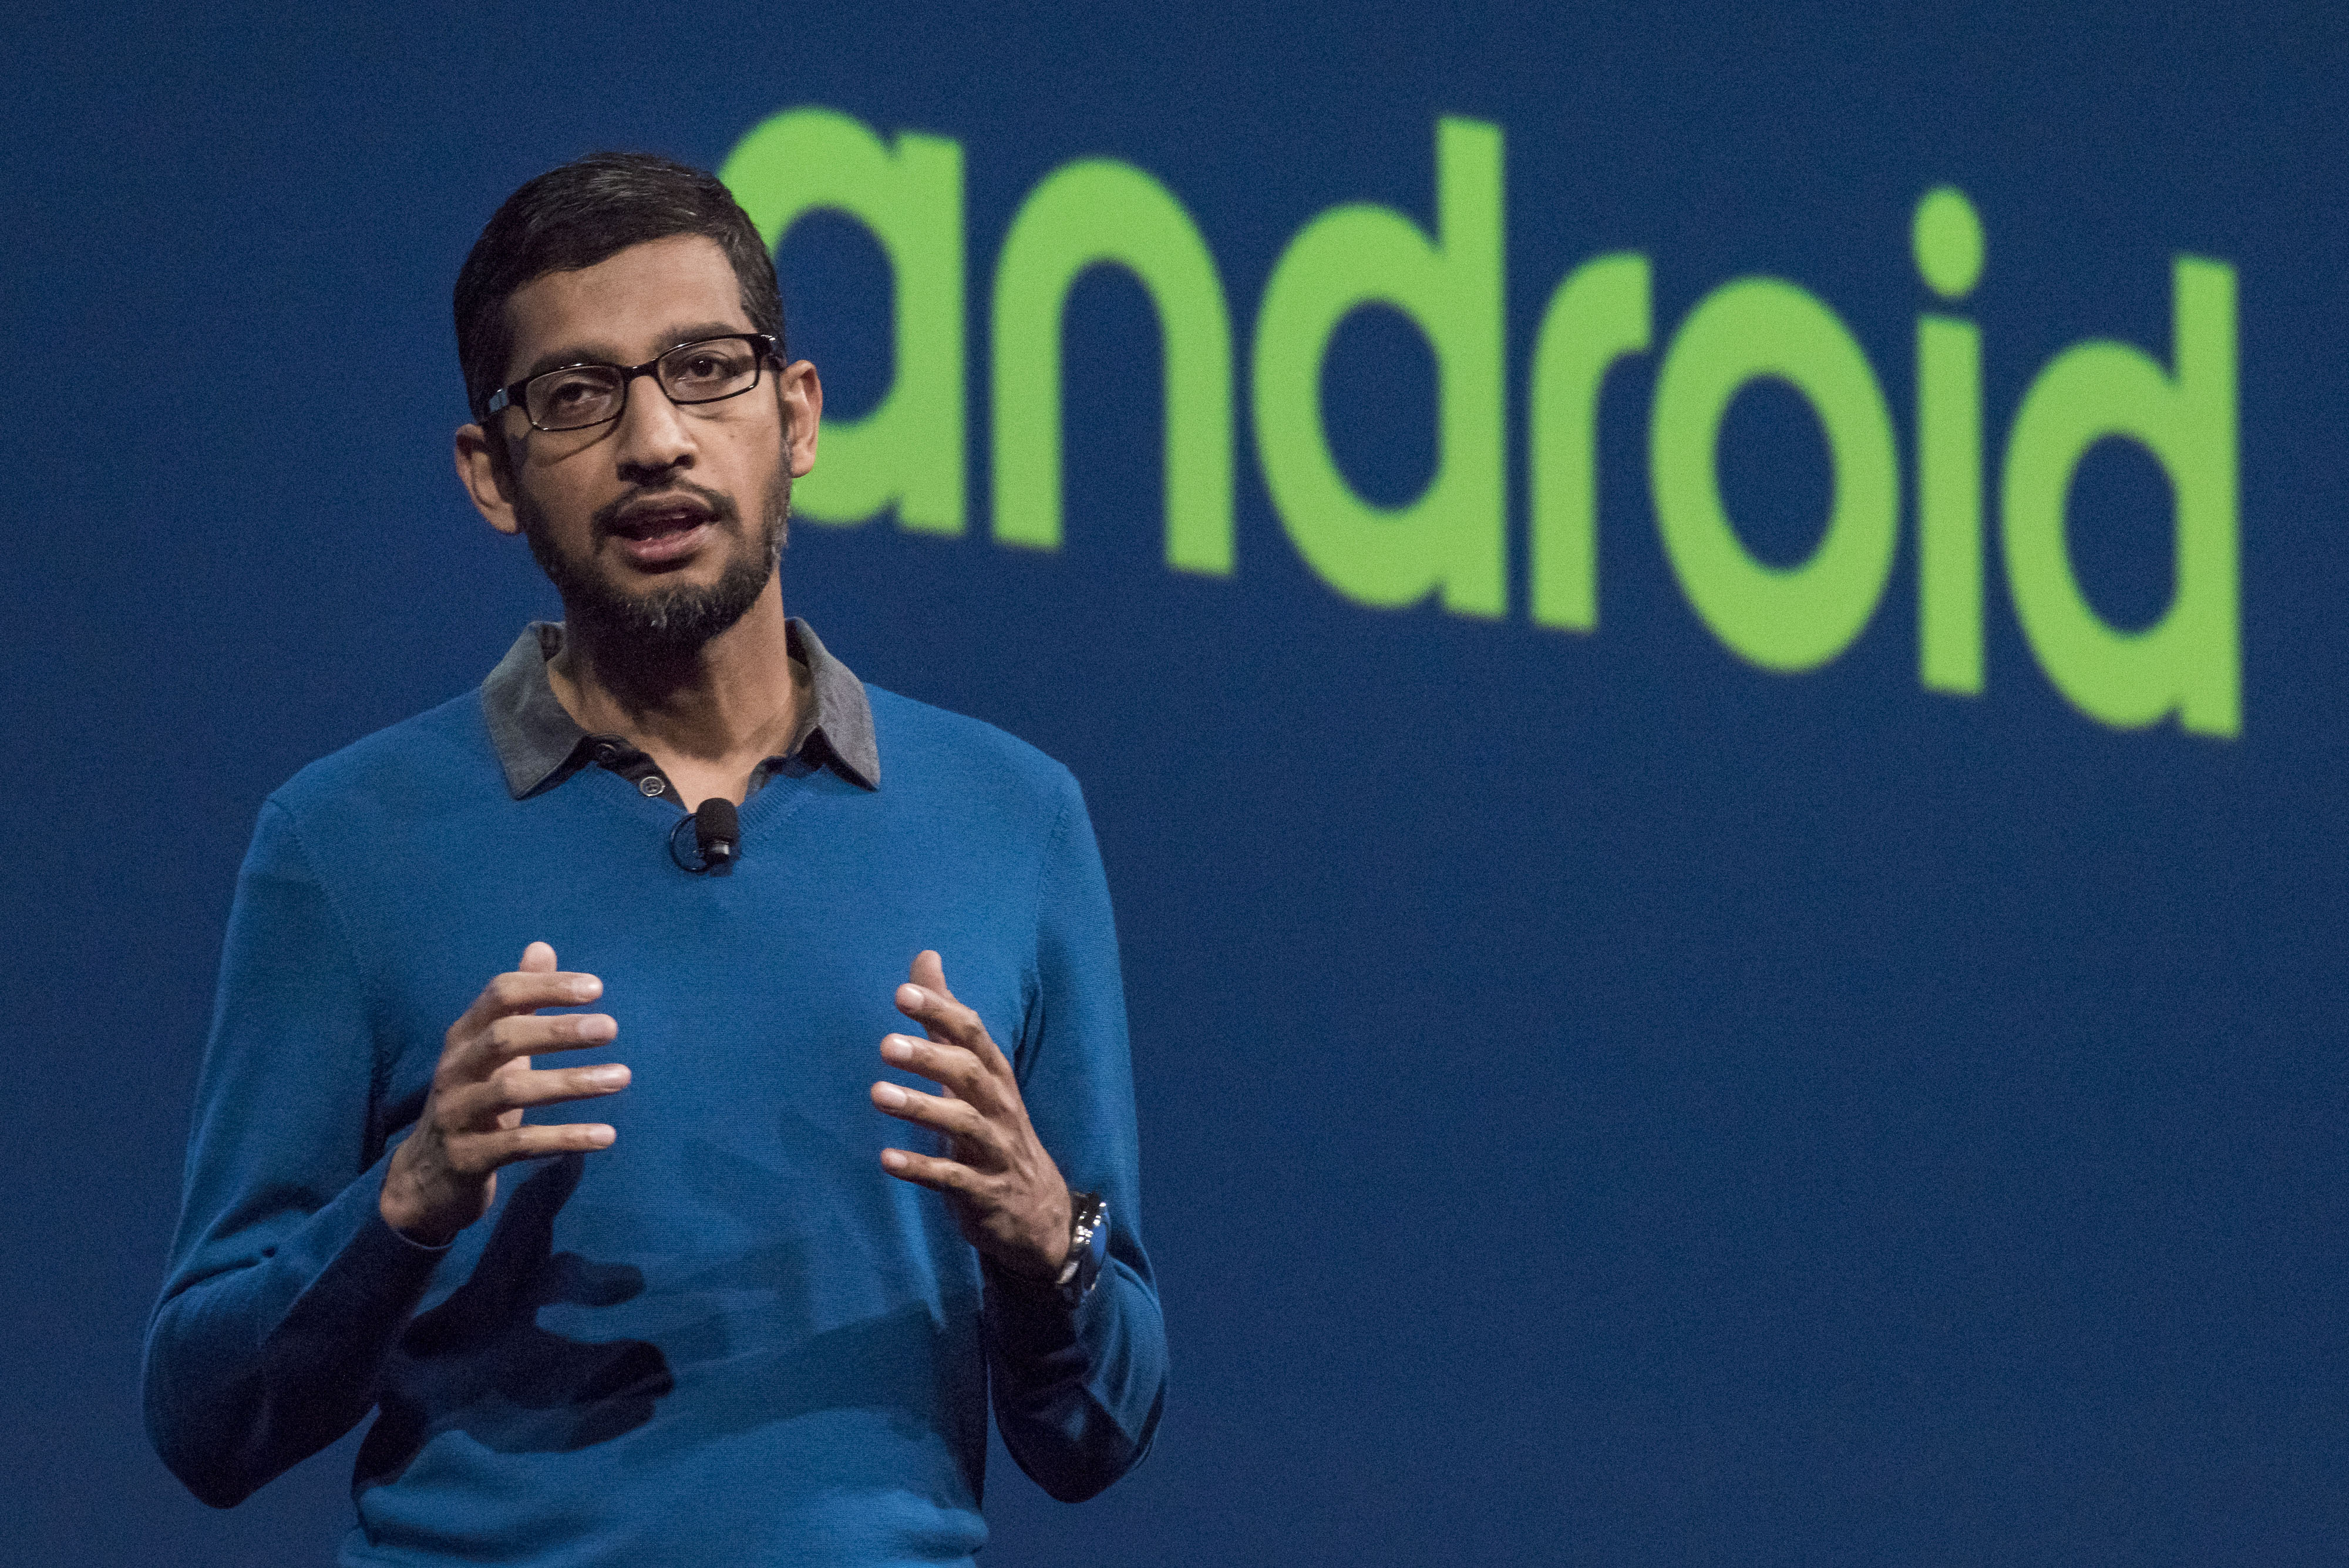 Sundar Pichai, senior vice-president of Products for Google Inc., speaks during the Google I/O Annual Developers Conference in San Francisco, California, U.S., on Thursday, May 28, 2014.